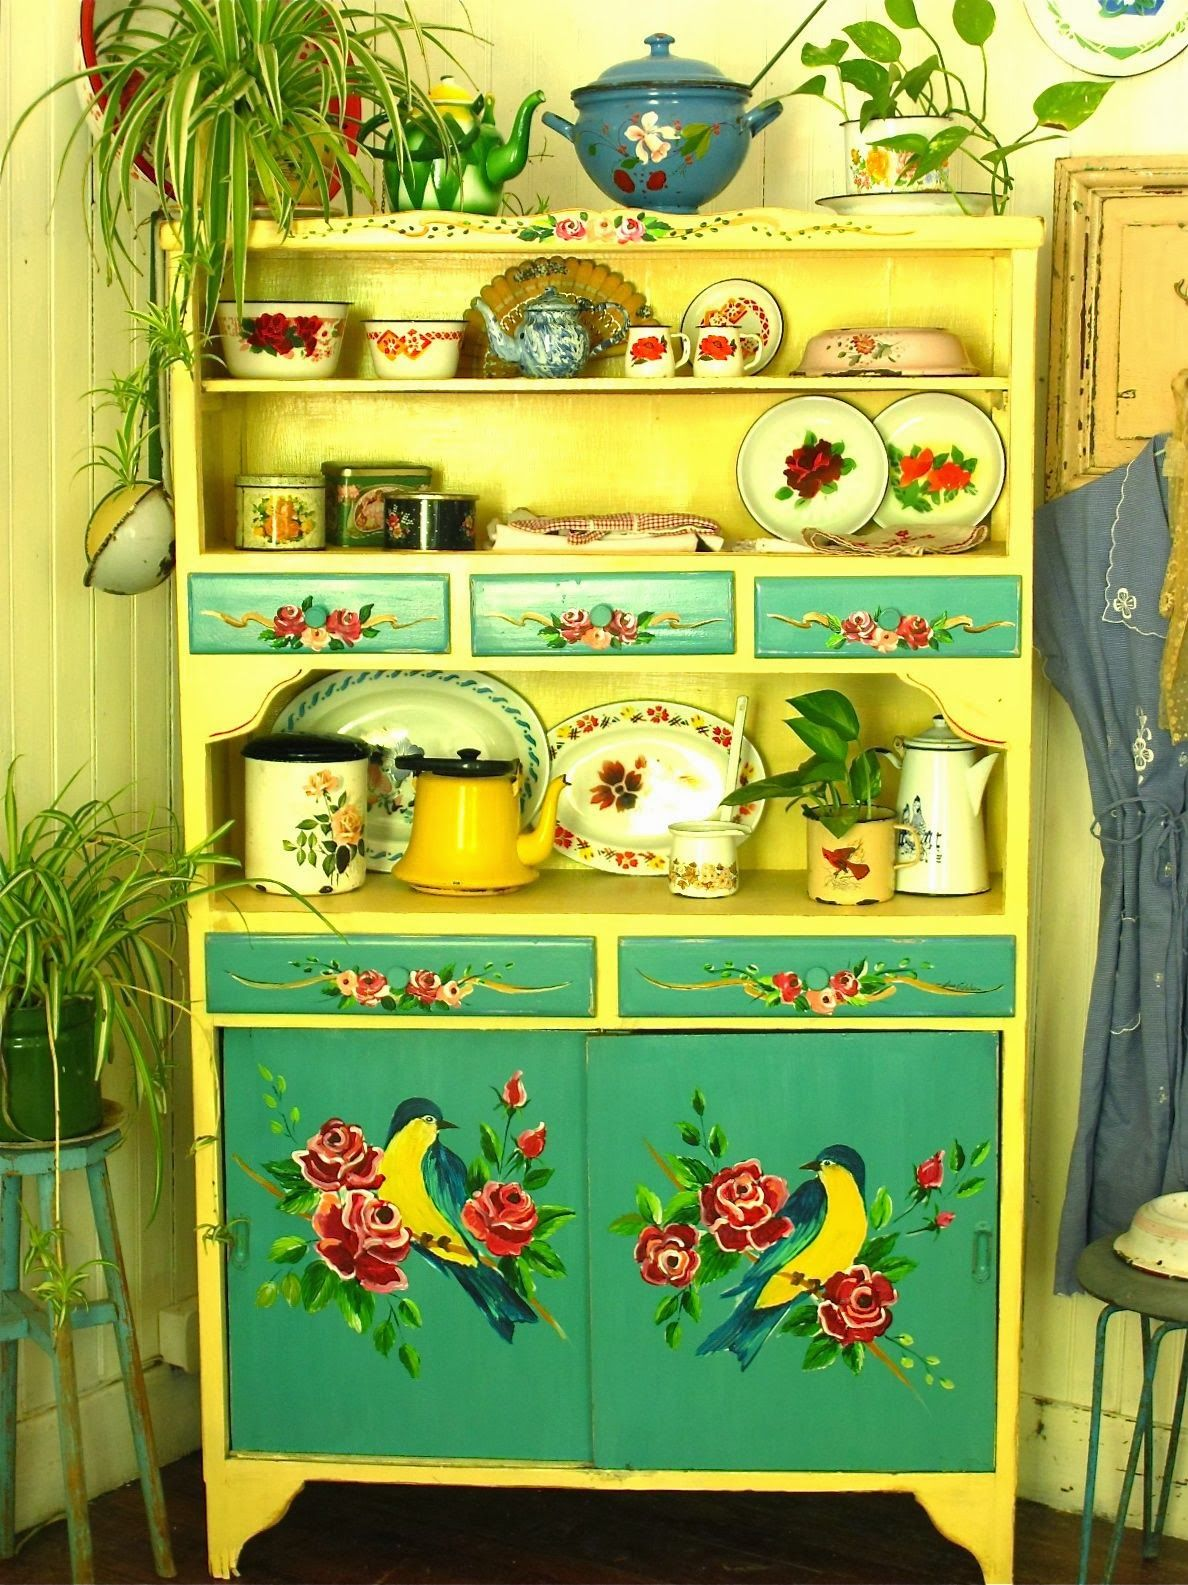 Küchen Bauern Schrank Website Full Of The Most Beautiful Hand Painted Furniture